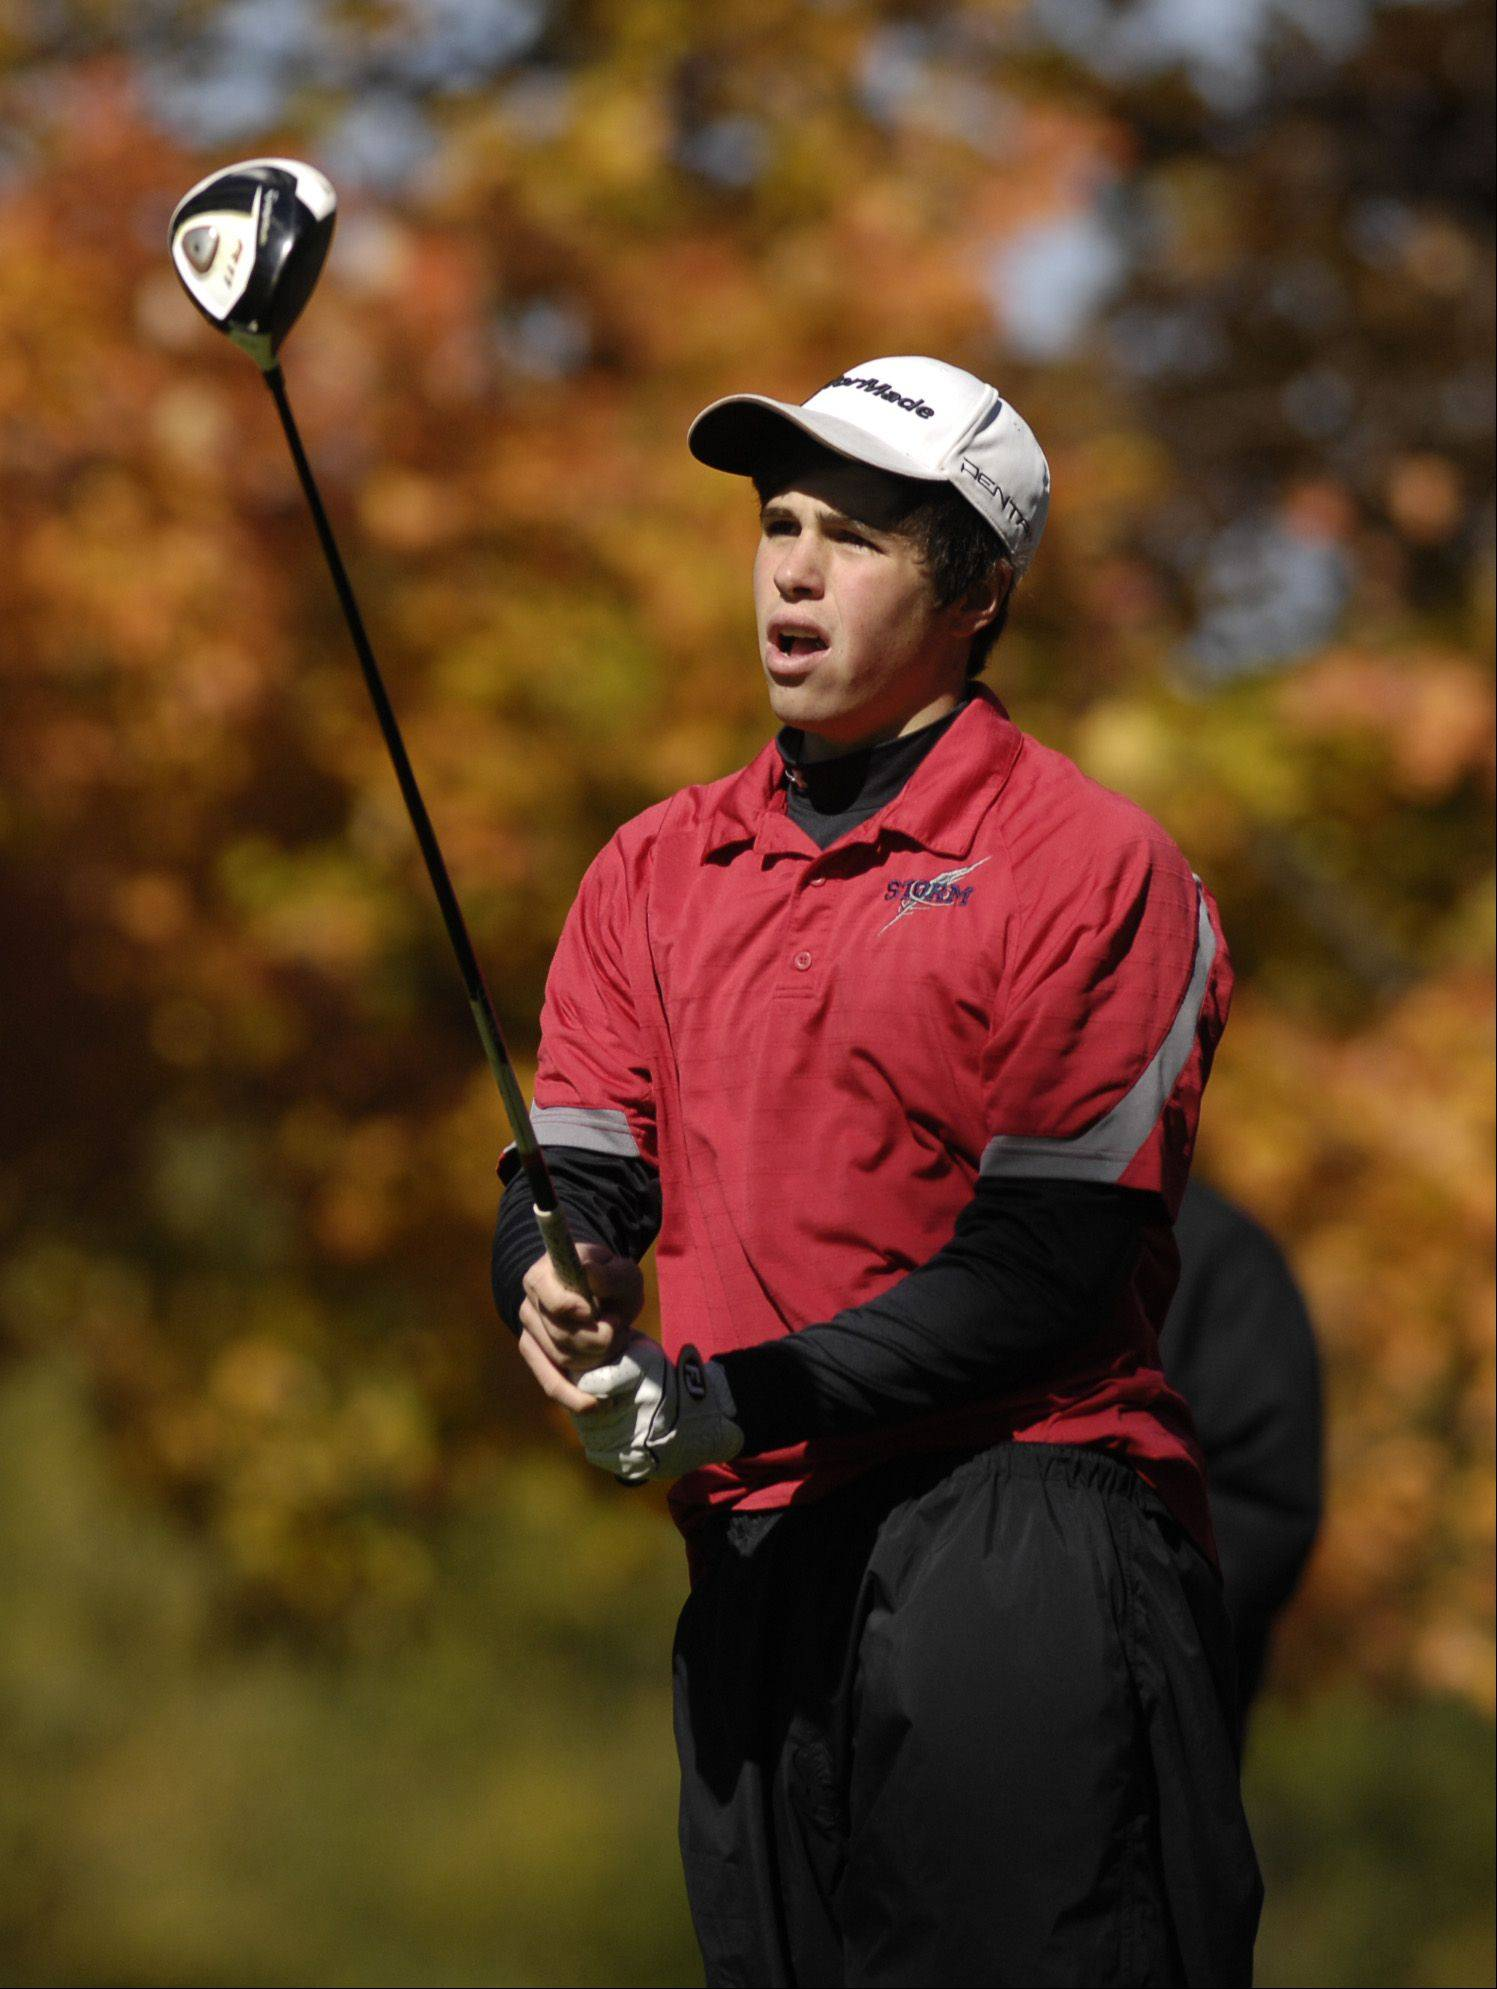 Andrew Dylo of South Elgin tees off during the St. Charles East boys varsity golf sectional at St. Andrews Golf Club in West Chicago, Monday, October 8, 2012.